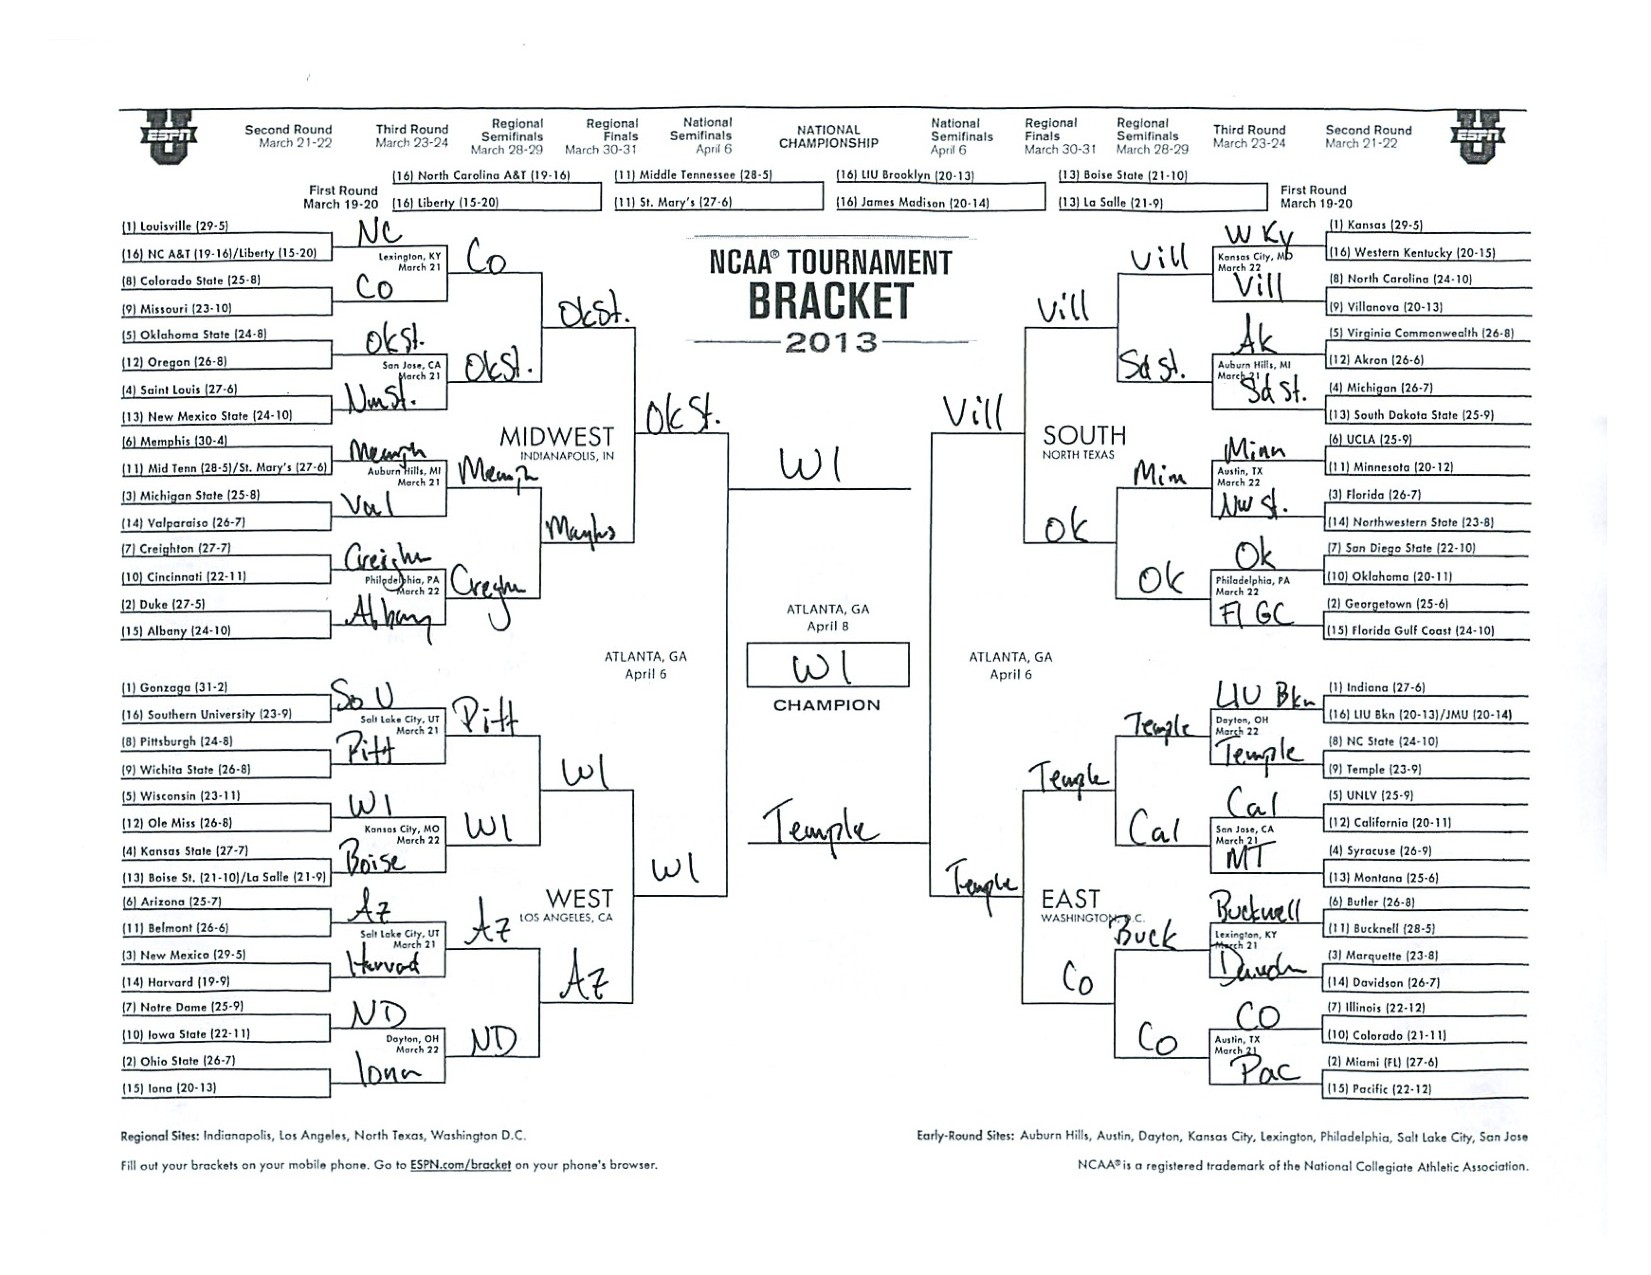 8 team 3 game guarantee bracket - Fill Out and Sign ...